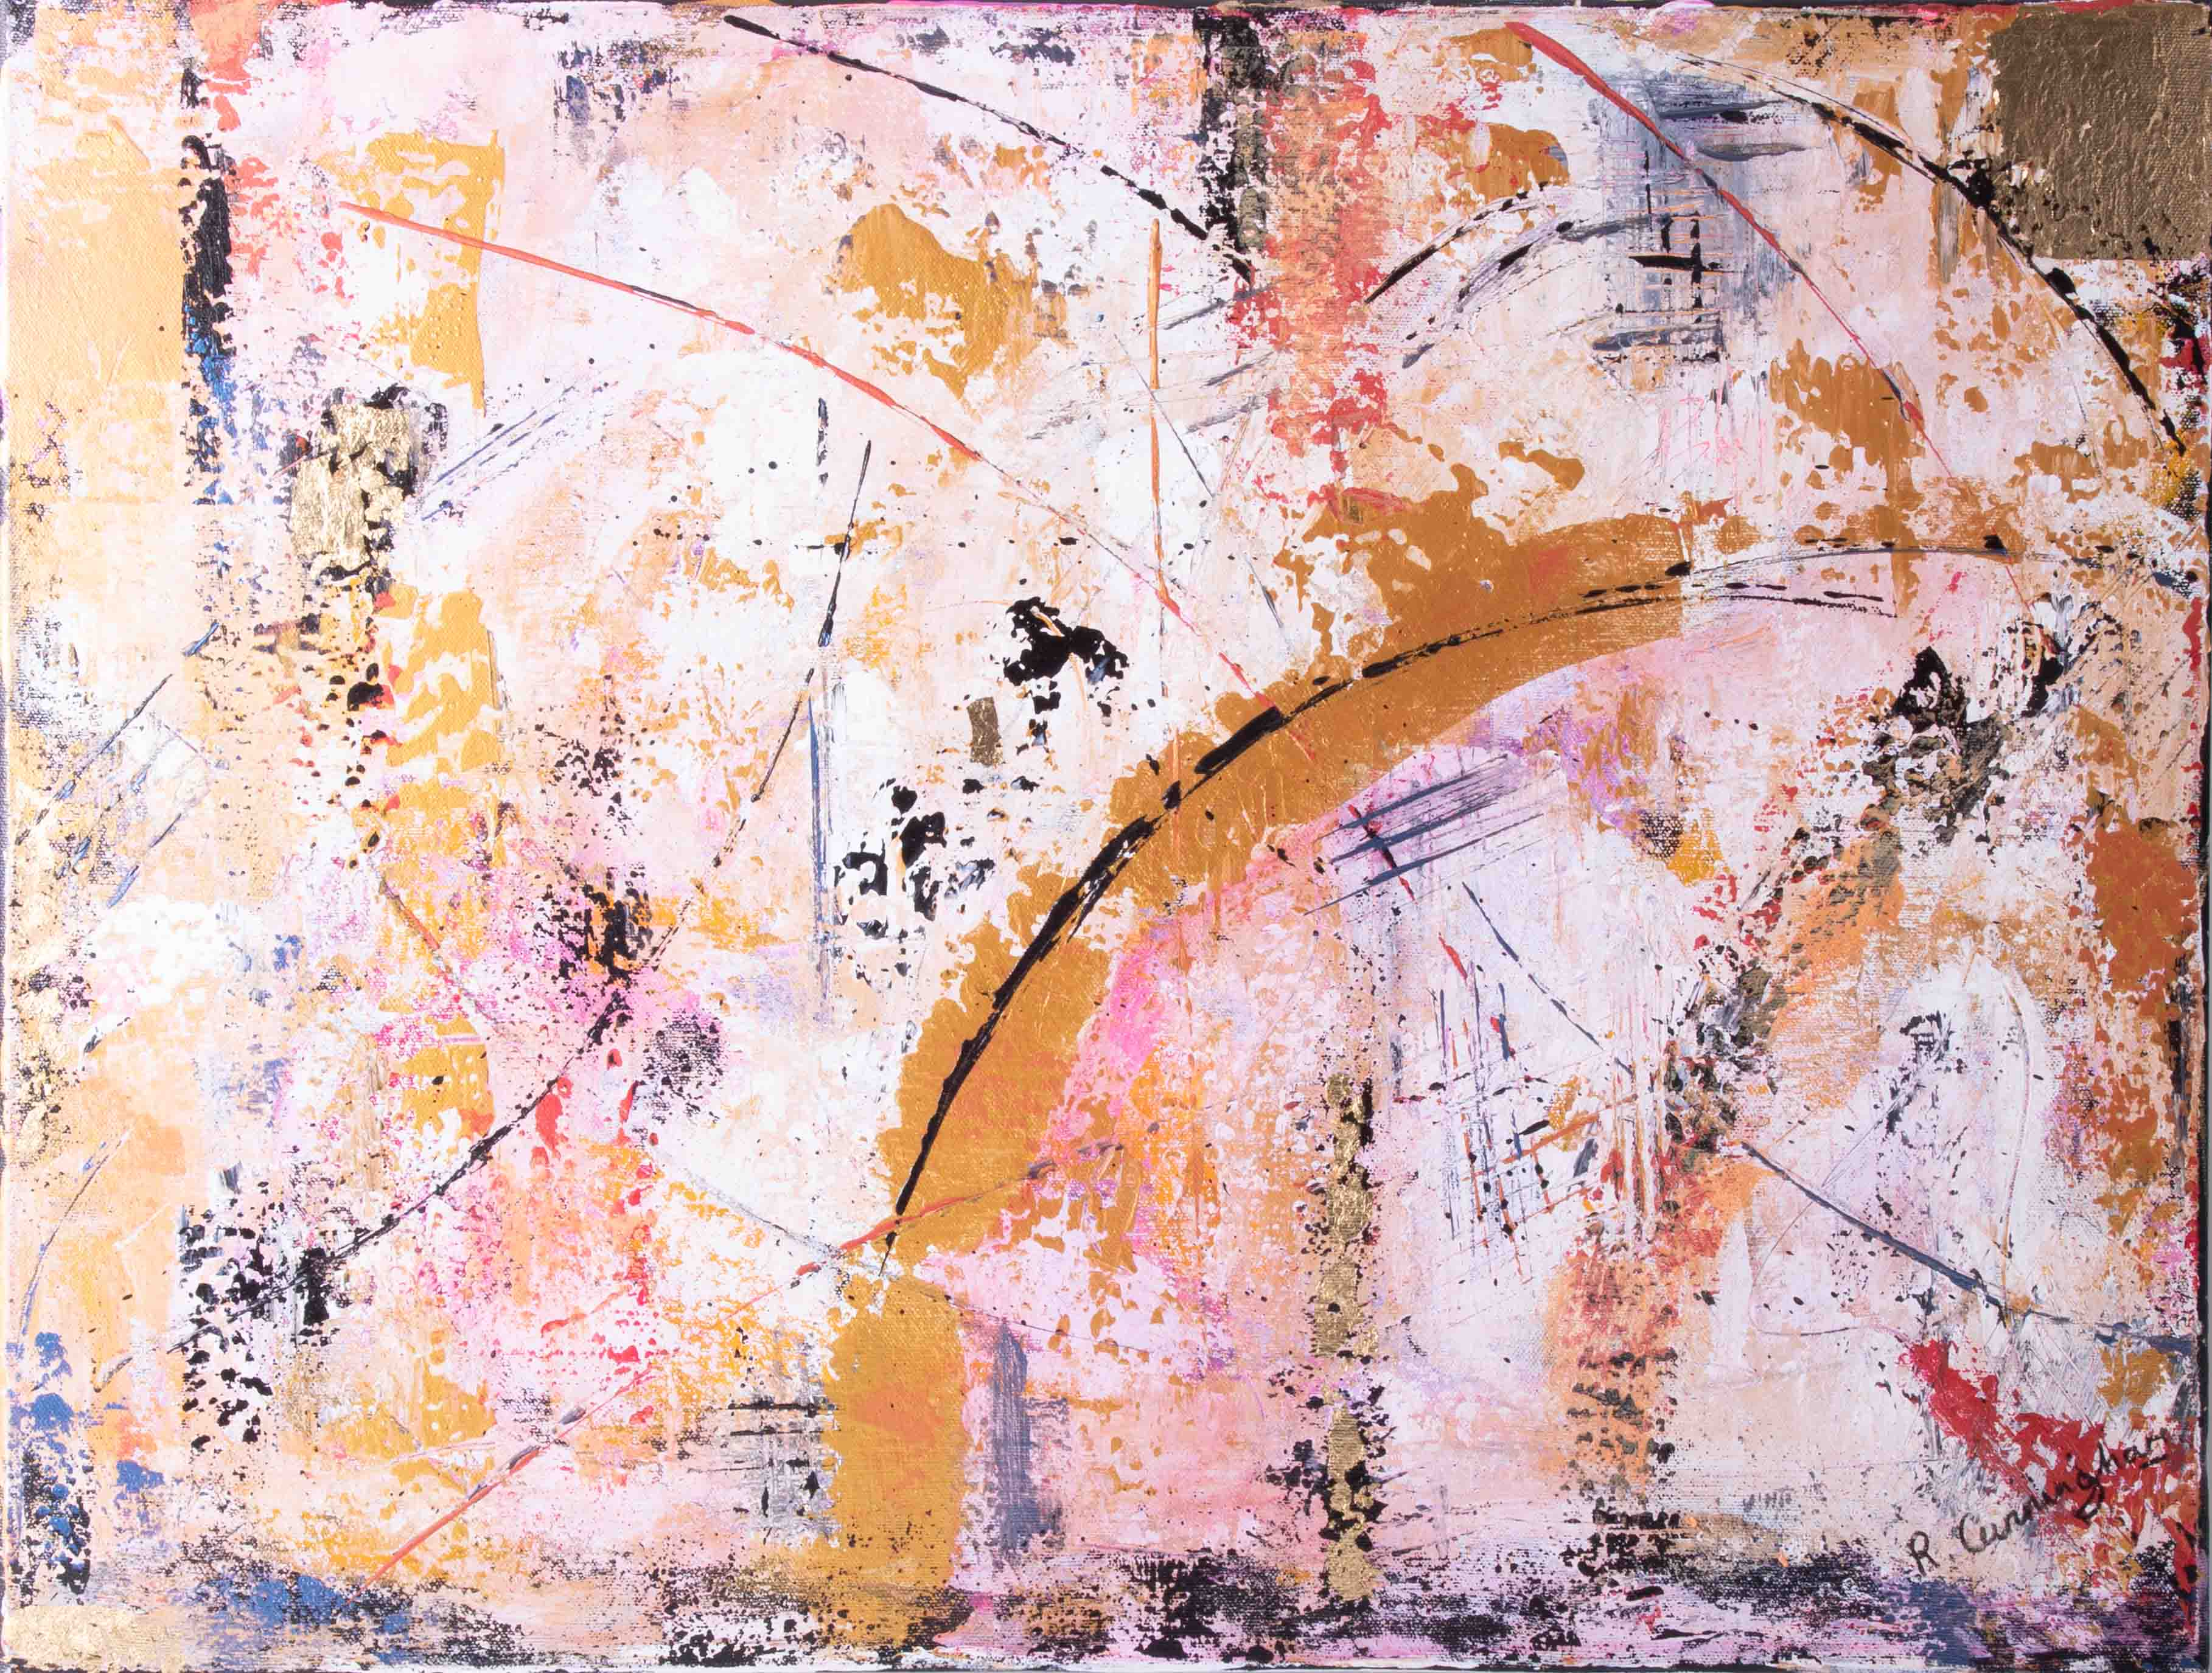 Rosie Cunningham, 'Urban Fusion' signed oil on canvas, 46cm x 61cm, unframed. Consigned from the